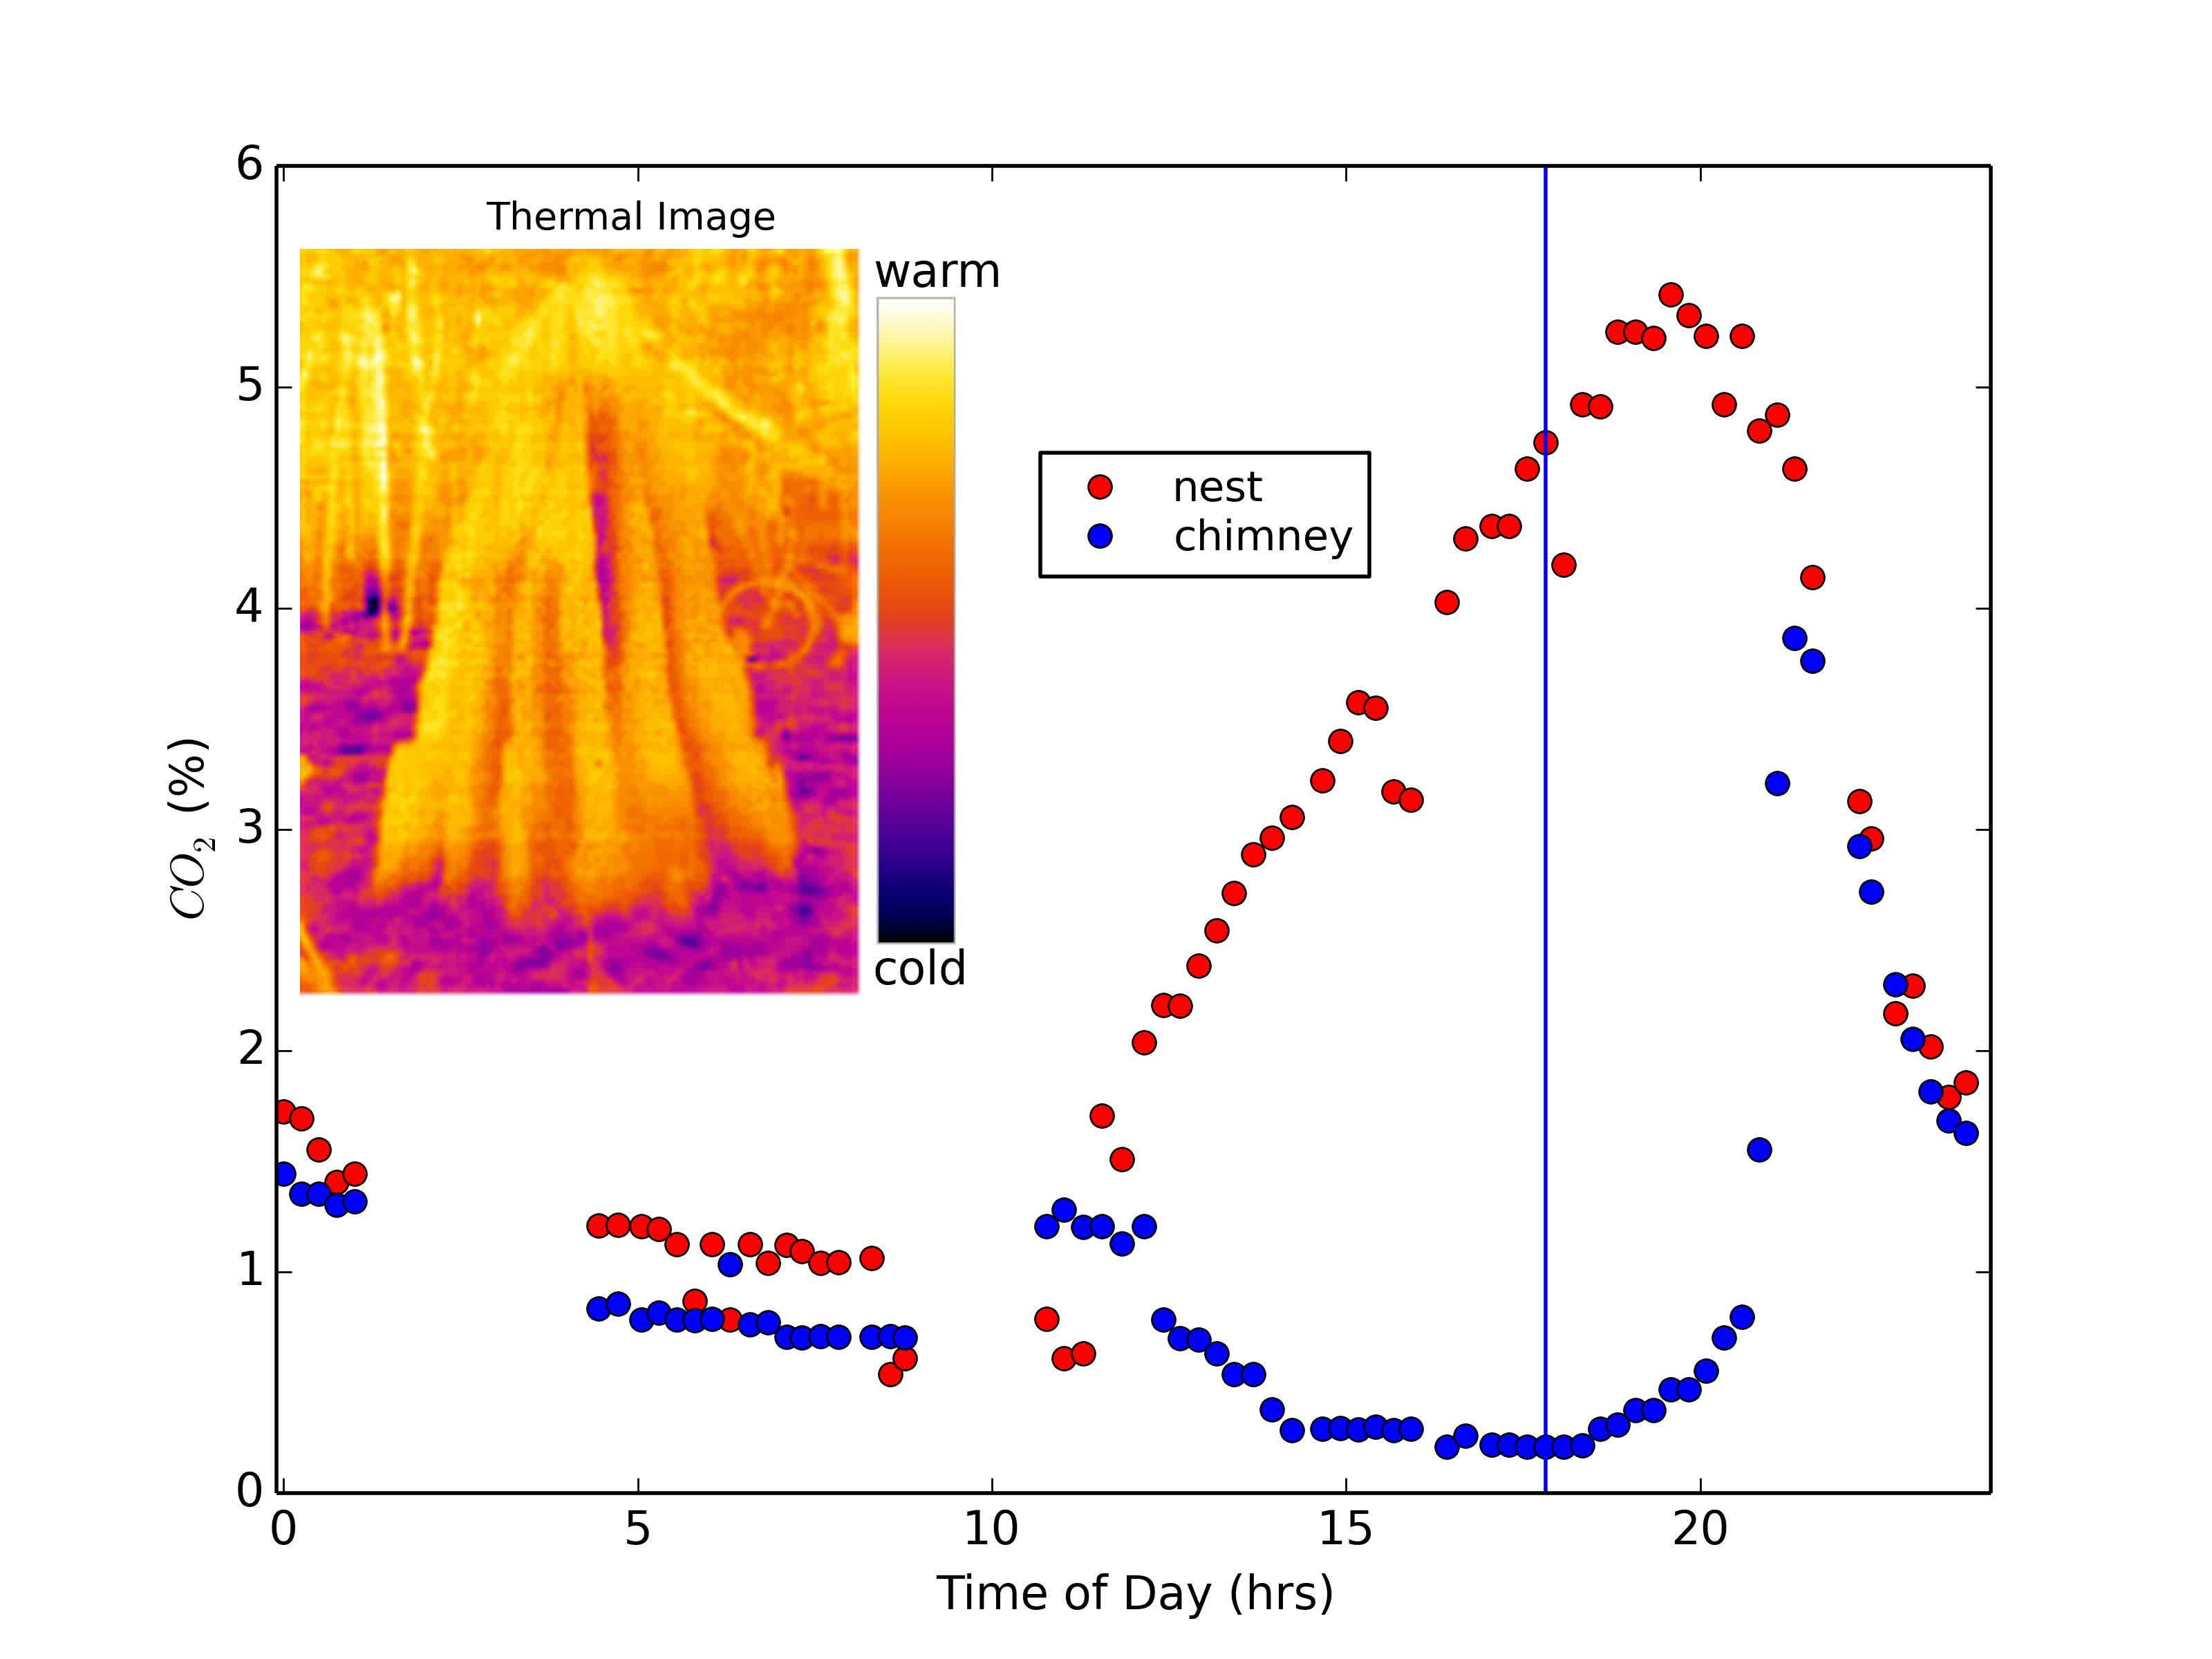 Termite mounds harness diurnal temperature oscillations for